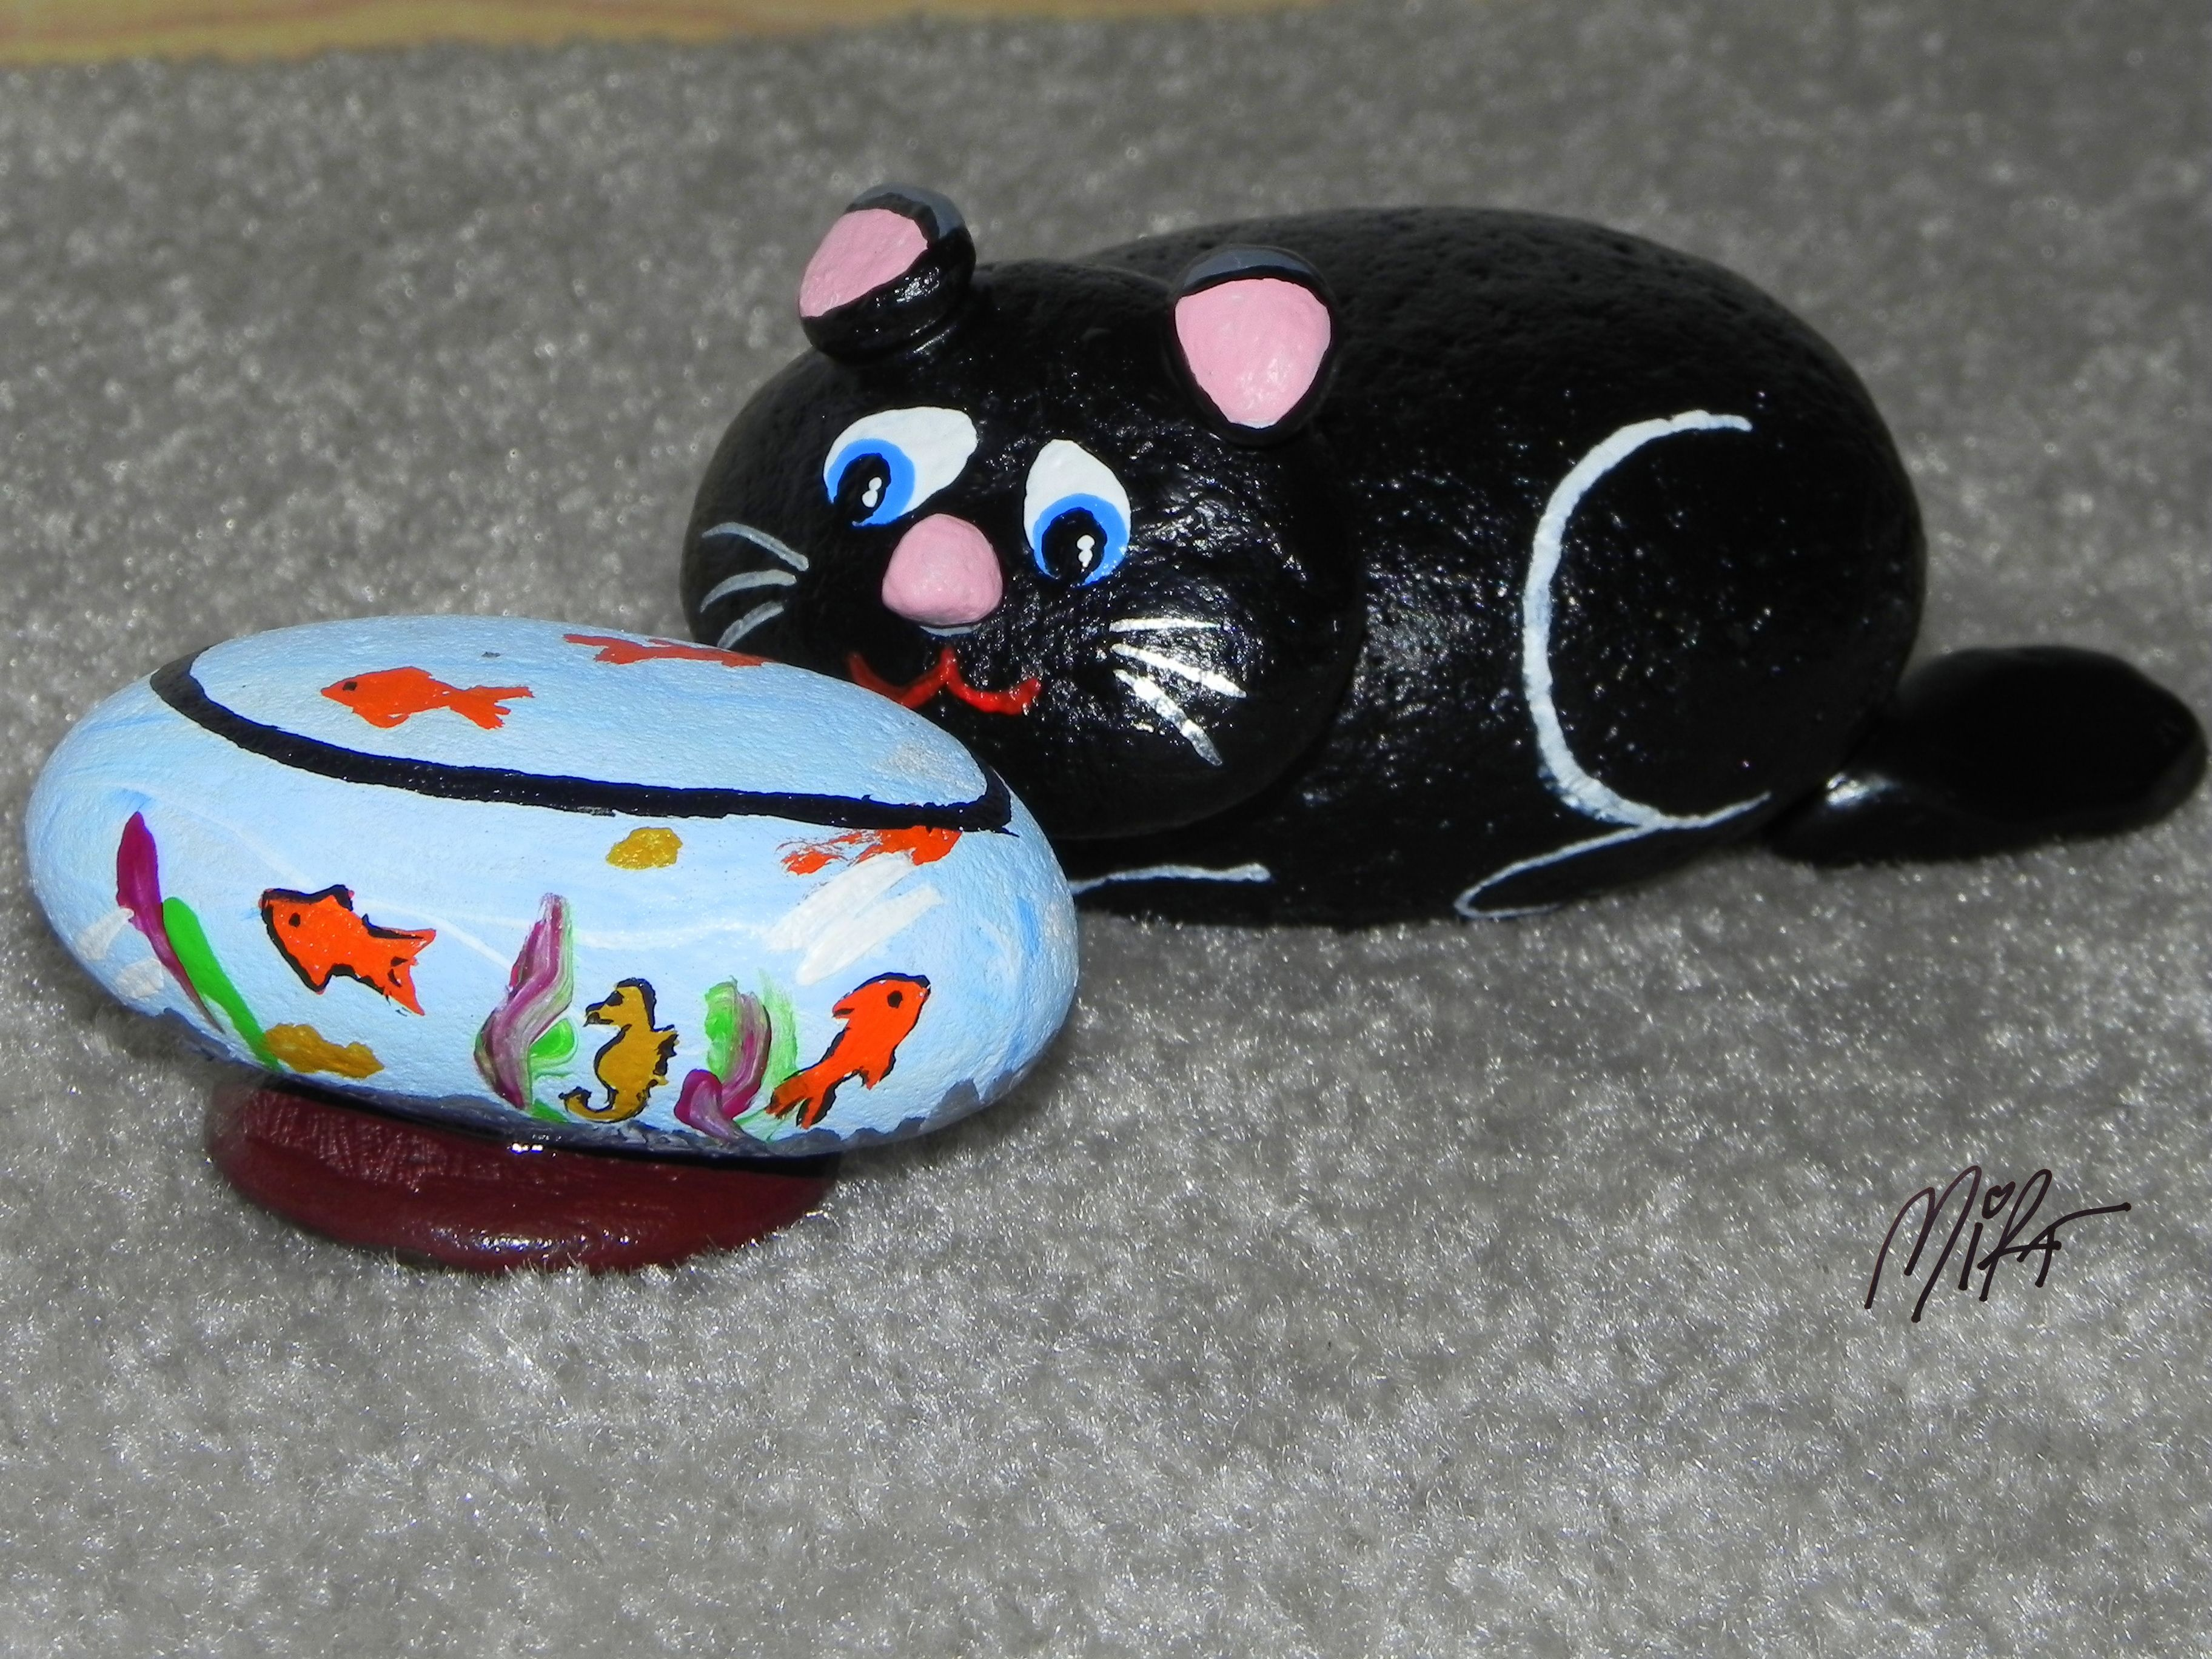 Cat fish bowl crafts painted rocks pinterest cat for Fish bowl rocks